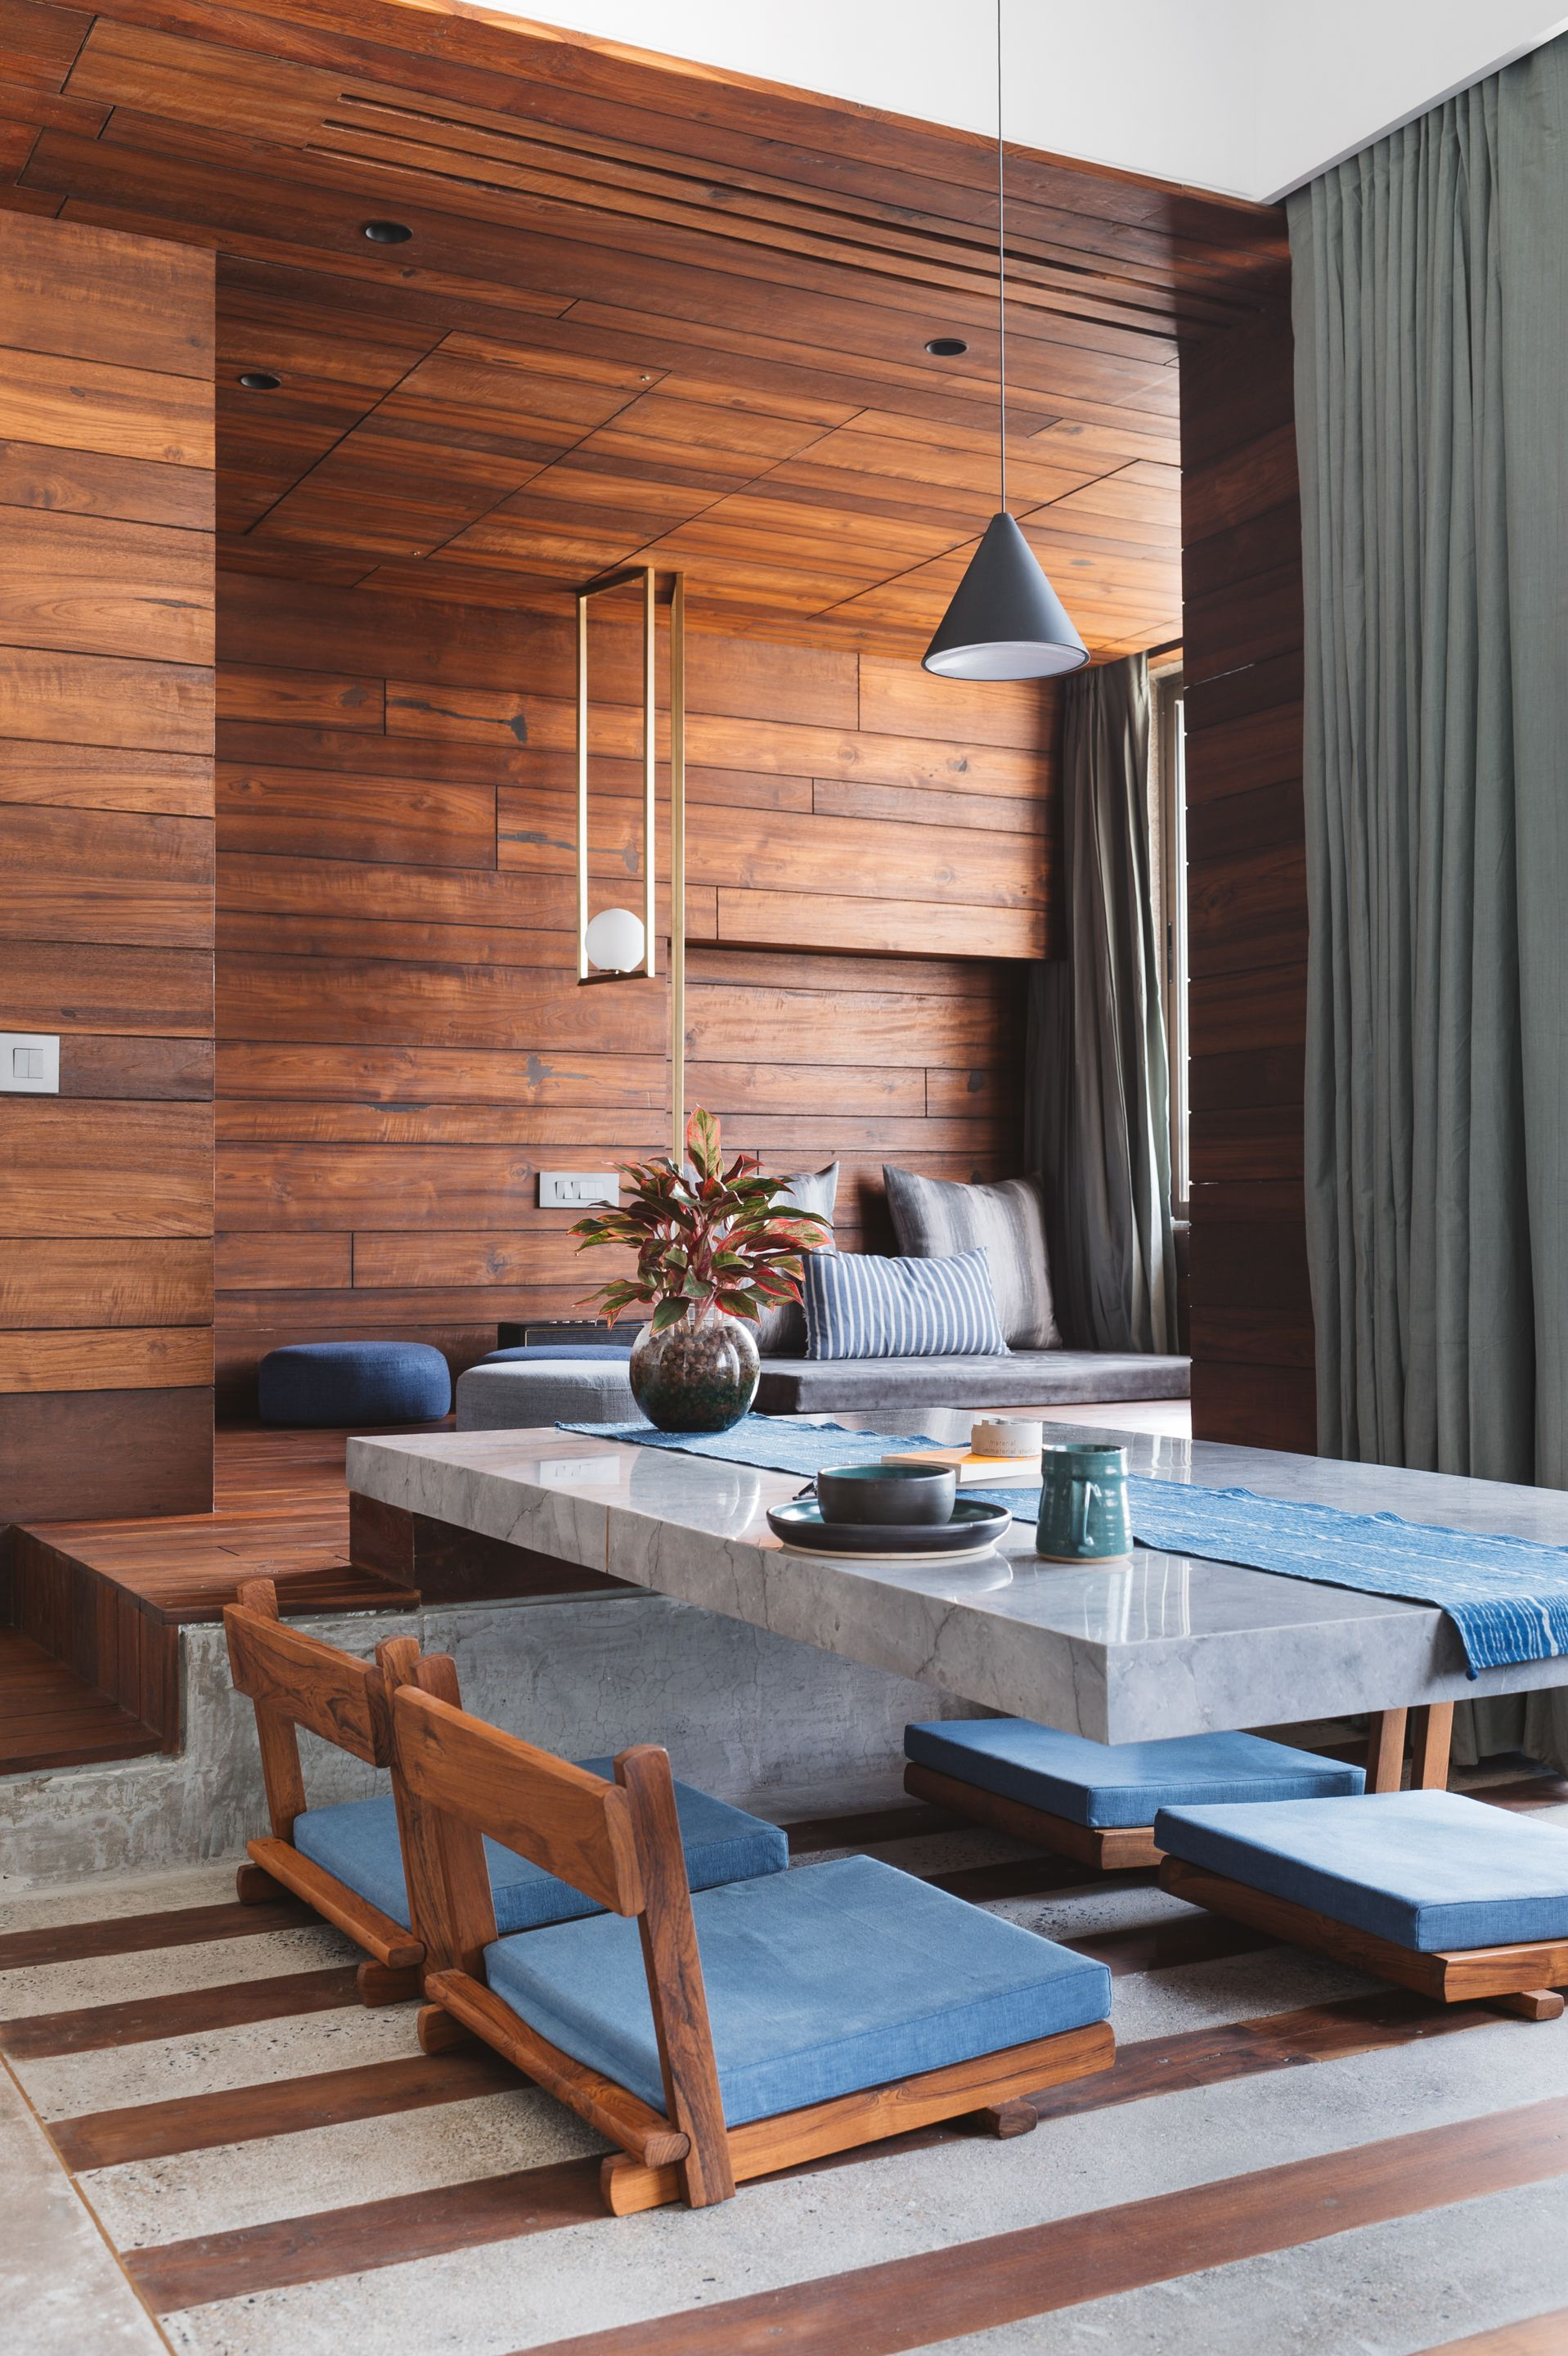 A Tour of Ahmedabad Architect Maly Doshi's 725 sq.ft Home